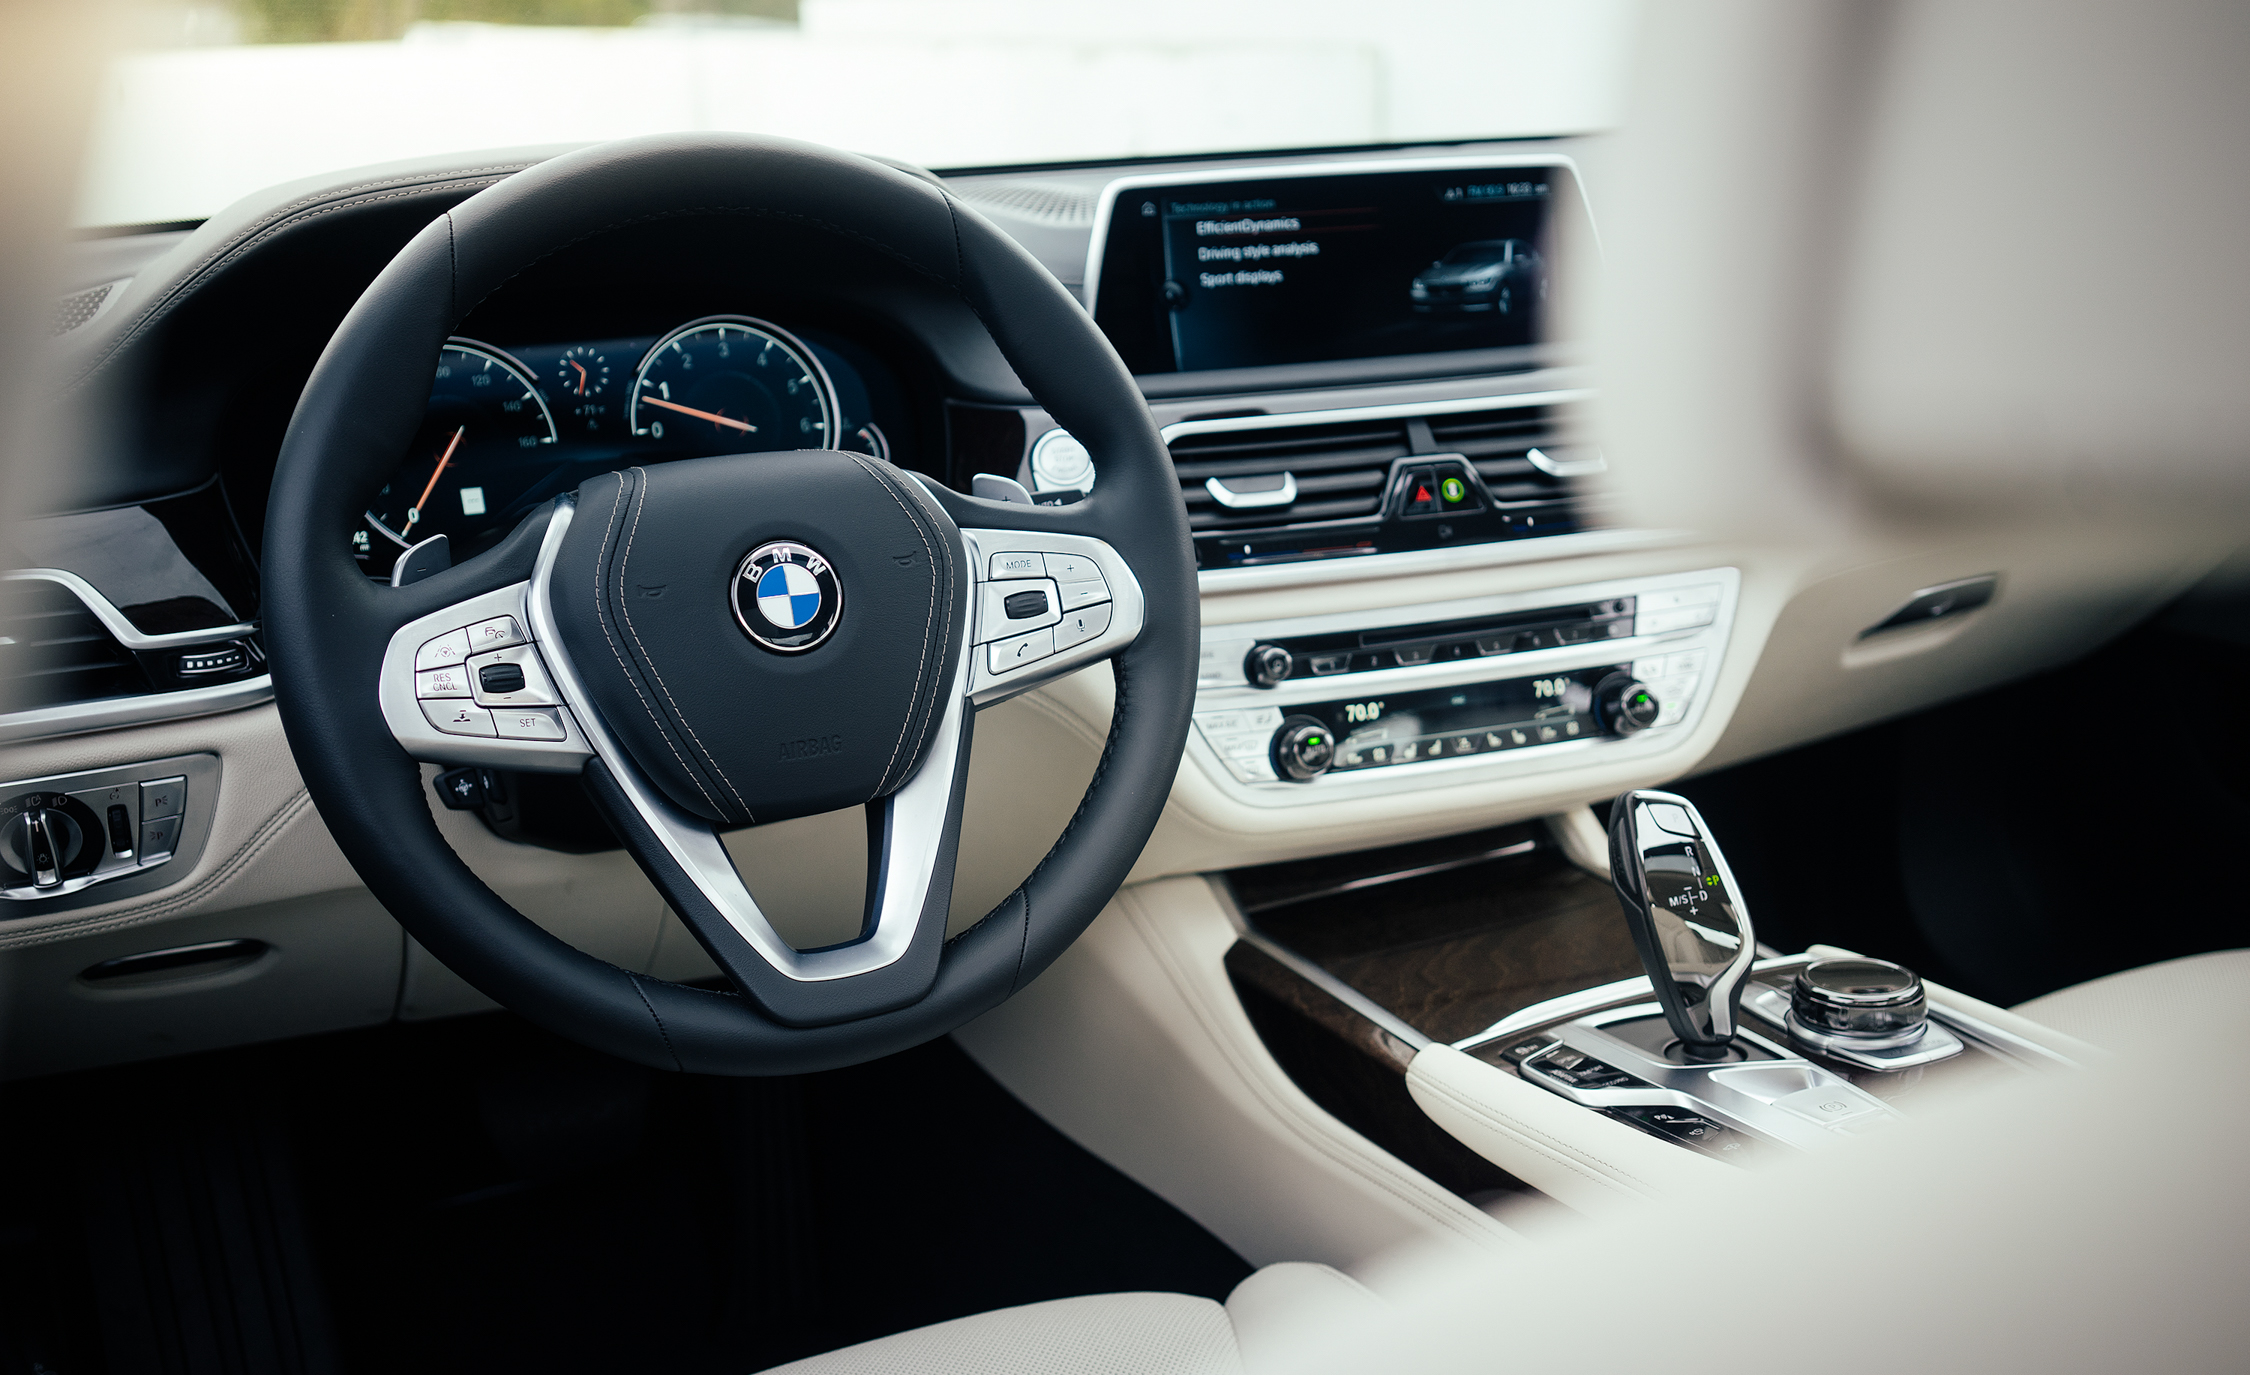 2016 BMW 750i xDrive Interior Cockpit